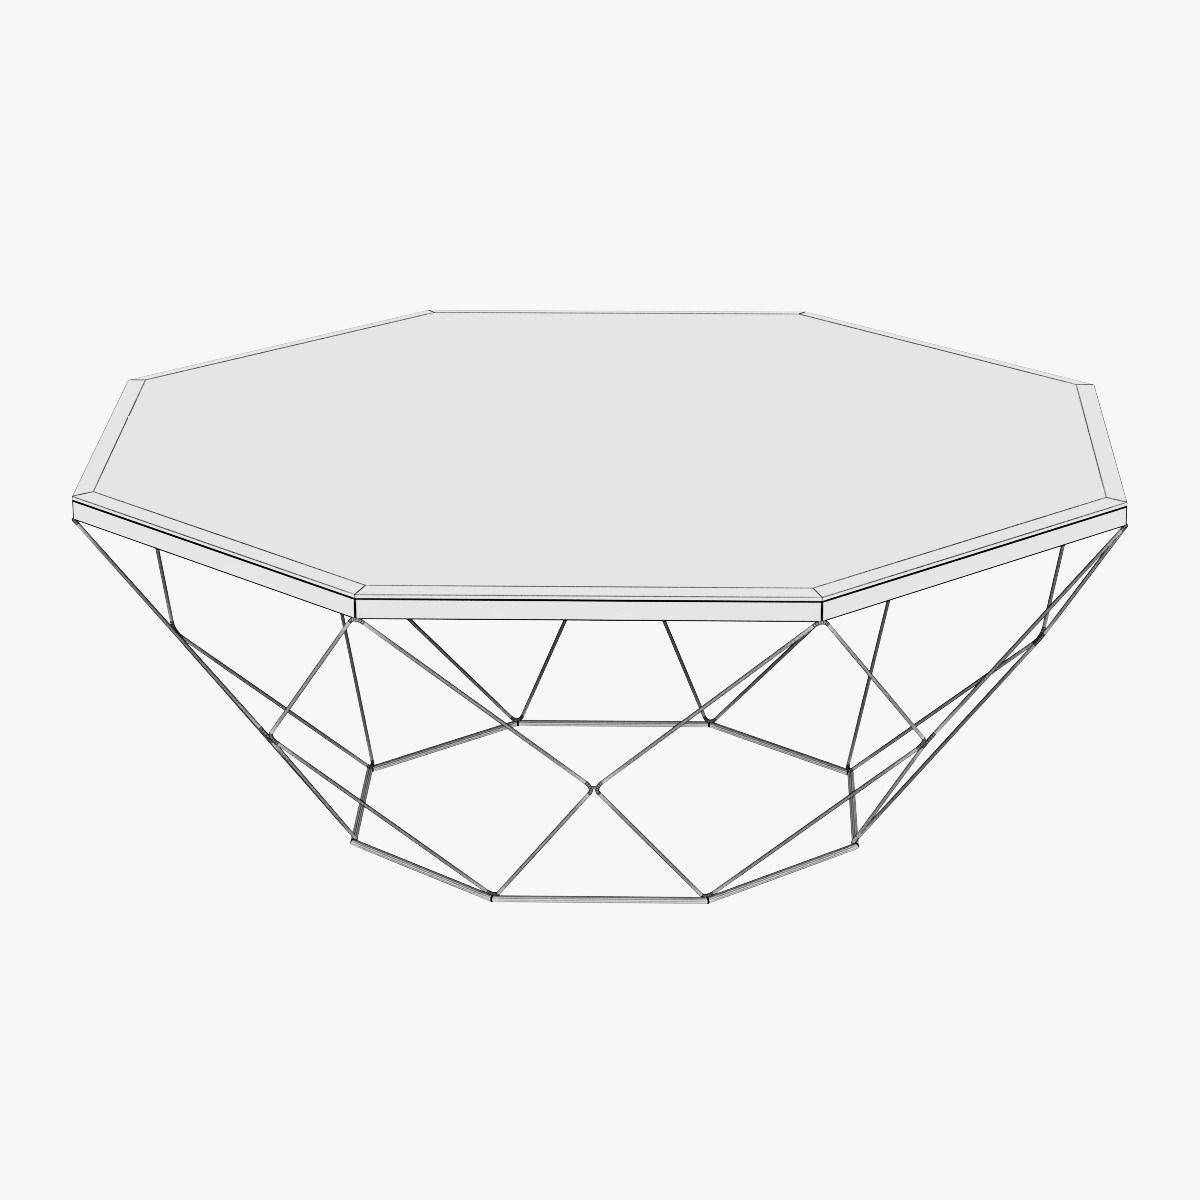 Geometric Antique Brass Coffee Table With Glass Top 3D Model Max with regard to Antique Brass Glass Coffee Tables (Image 21 of 37)